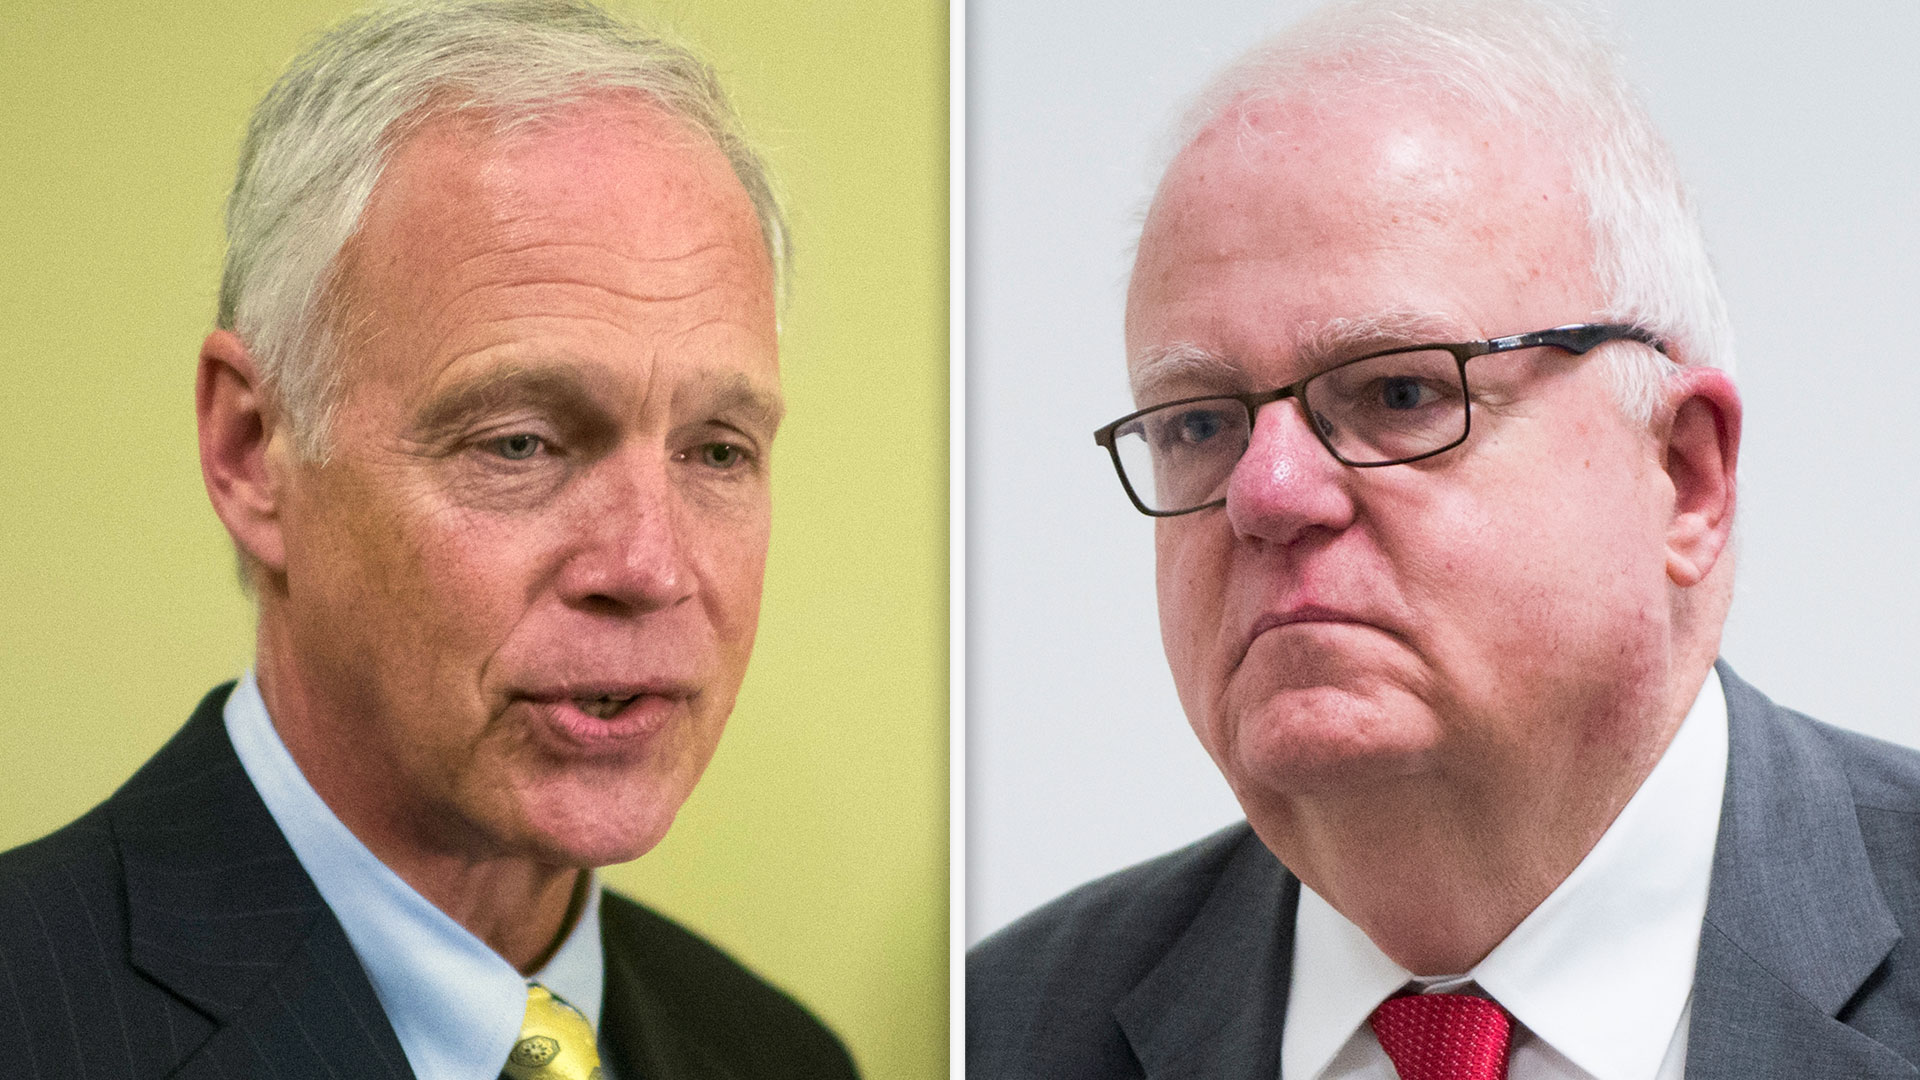 Wisconsin Sen. Ron Johnson, left, and Rep. Jim Sensenbrenner have introduced companion bills called the Stopping Overdoses of Fentanyl Analogues, or SOFA, Act. (Tom Williams/Bill Clark/CQ Roll Call file photos)